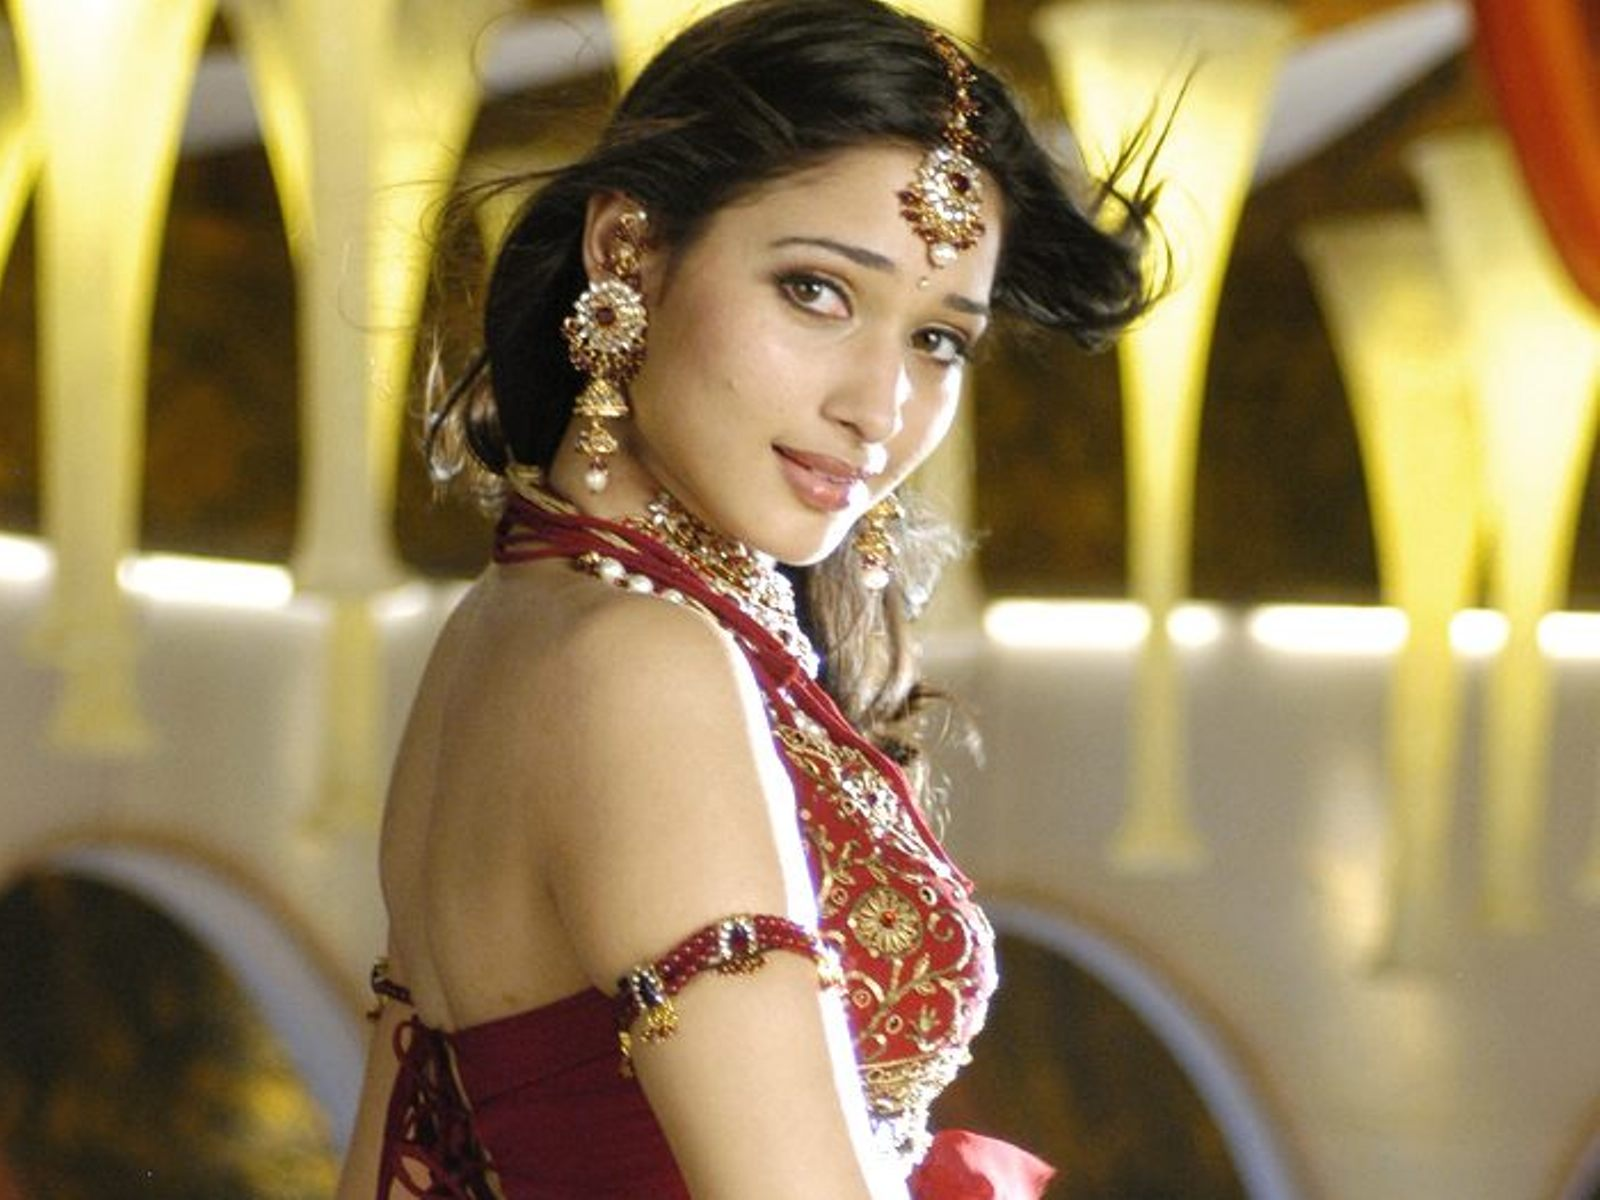 Tamanna Bhatia Hd Wallpapers: High Definition Wallpapers: Tamanna Bhatia